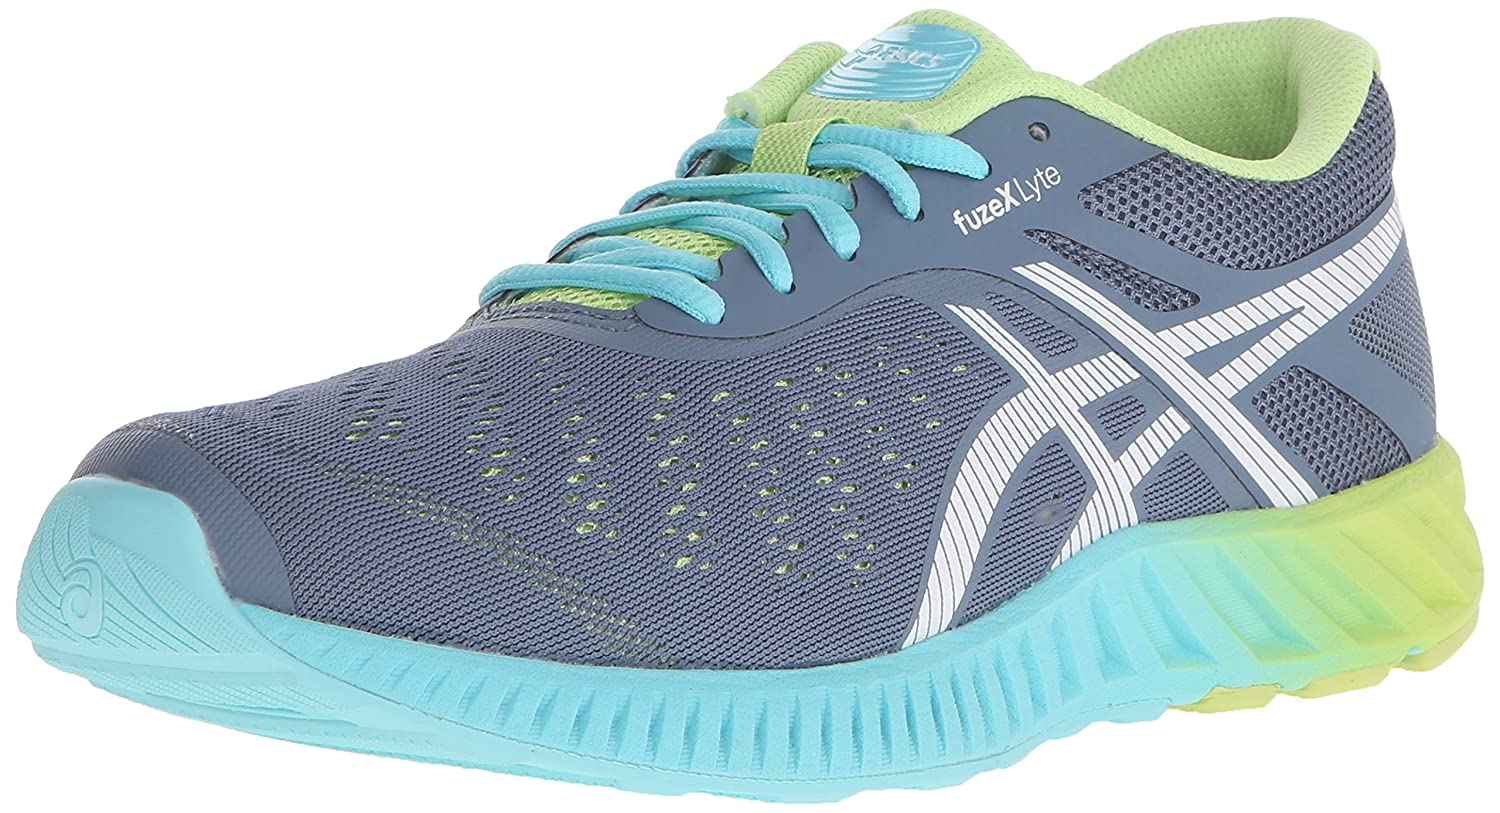 ASICS Women's fuzeX Lyte Running Shoe B00YB0L126 12.5 B(M) US|Blue Mirage/White/Sharp Green